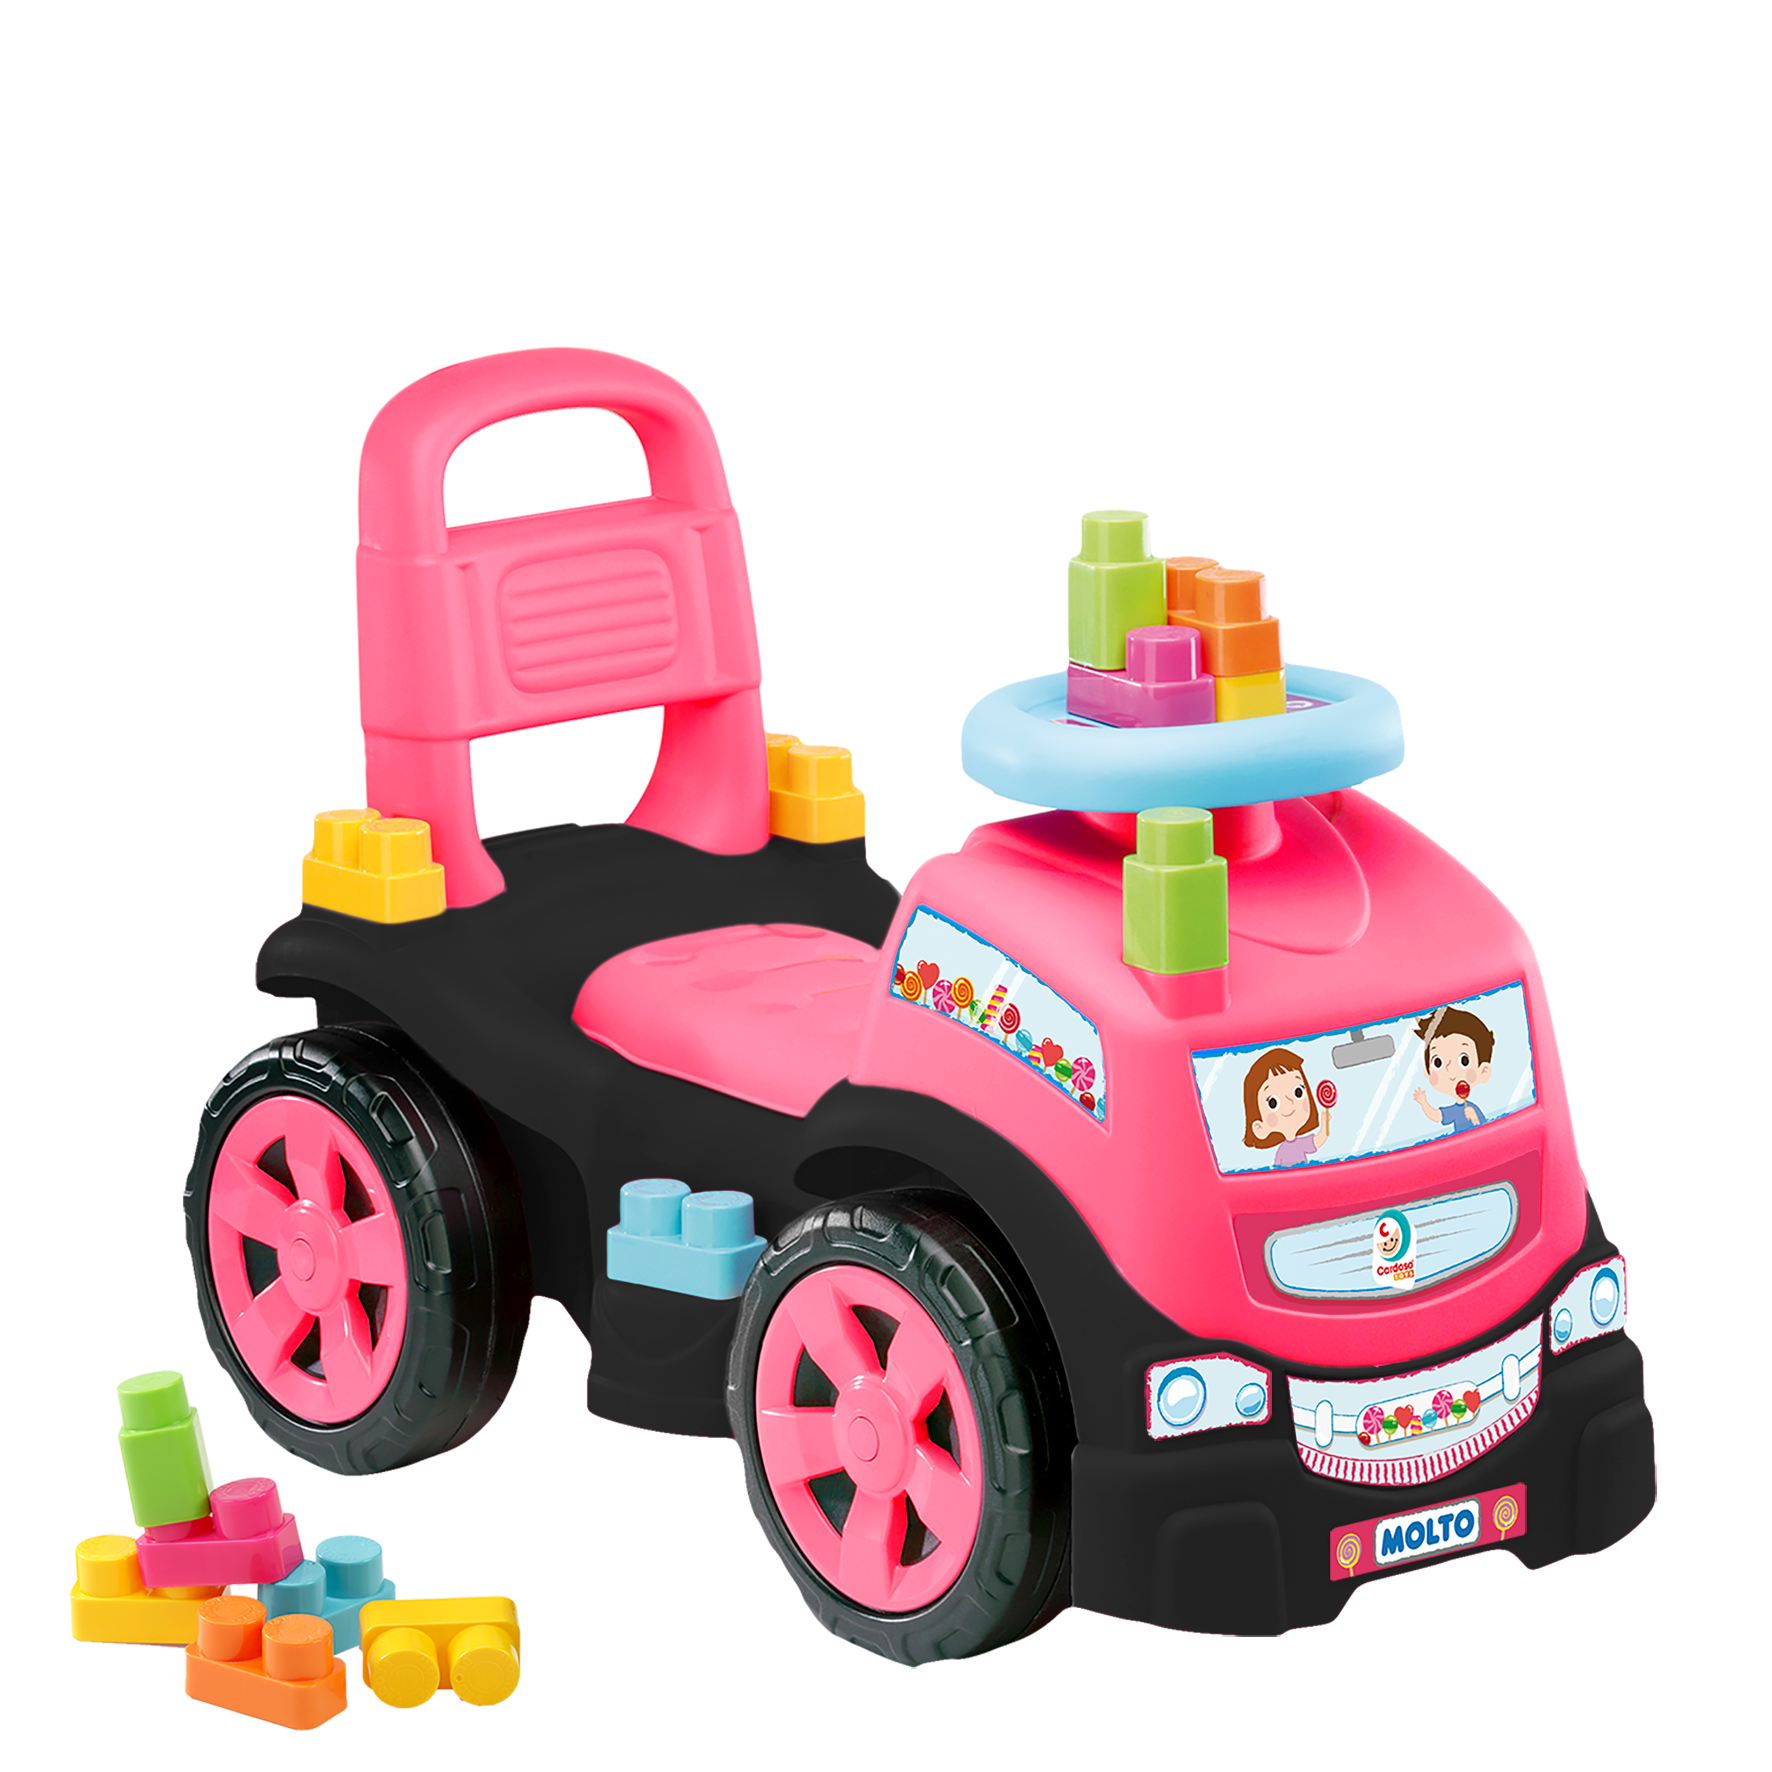 REF.-8013-Baby-Land-Blocks-Truck-Ride-On-menina